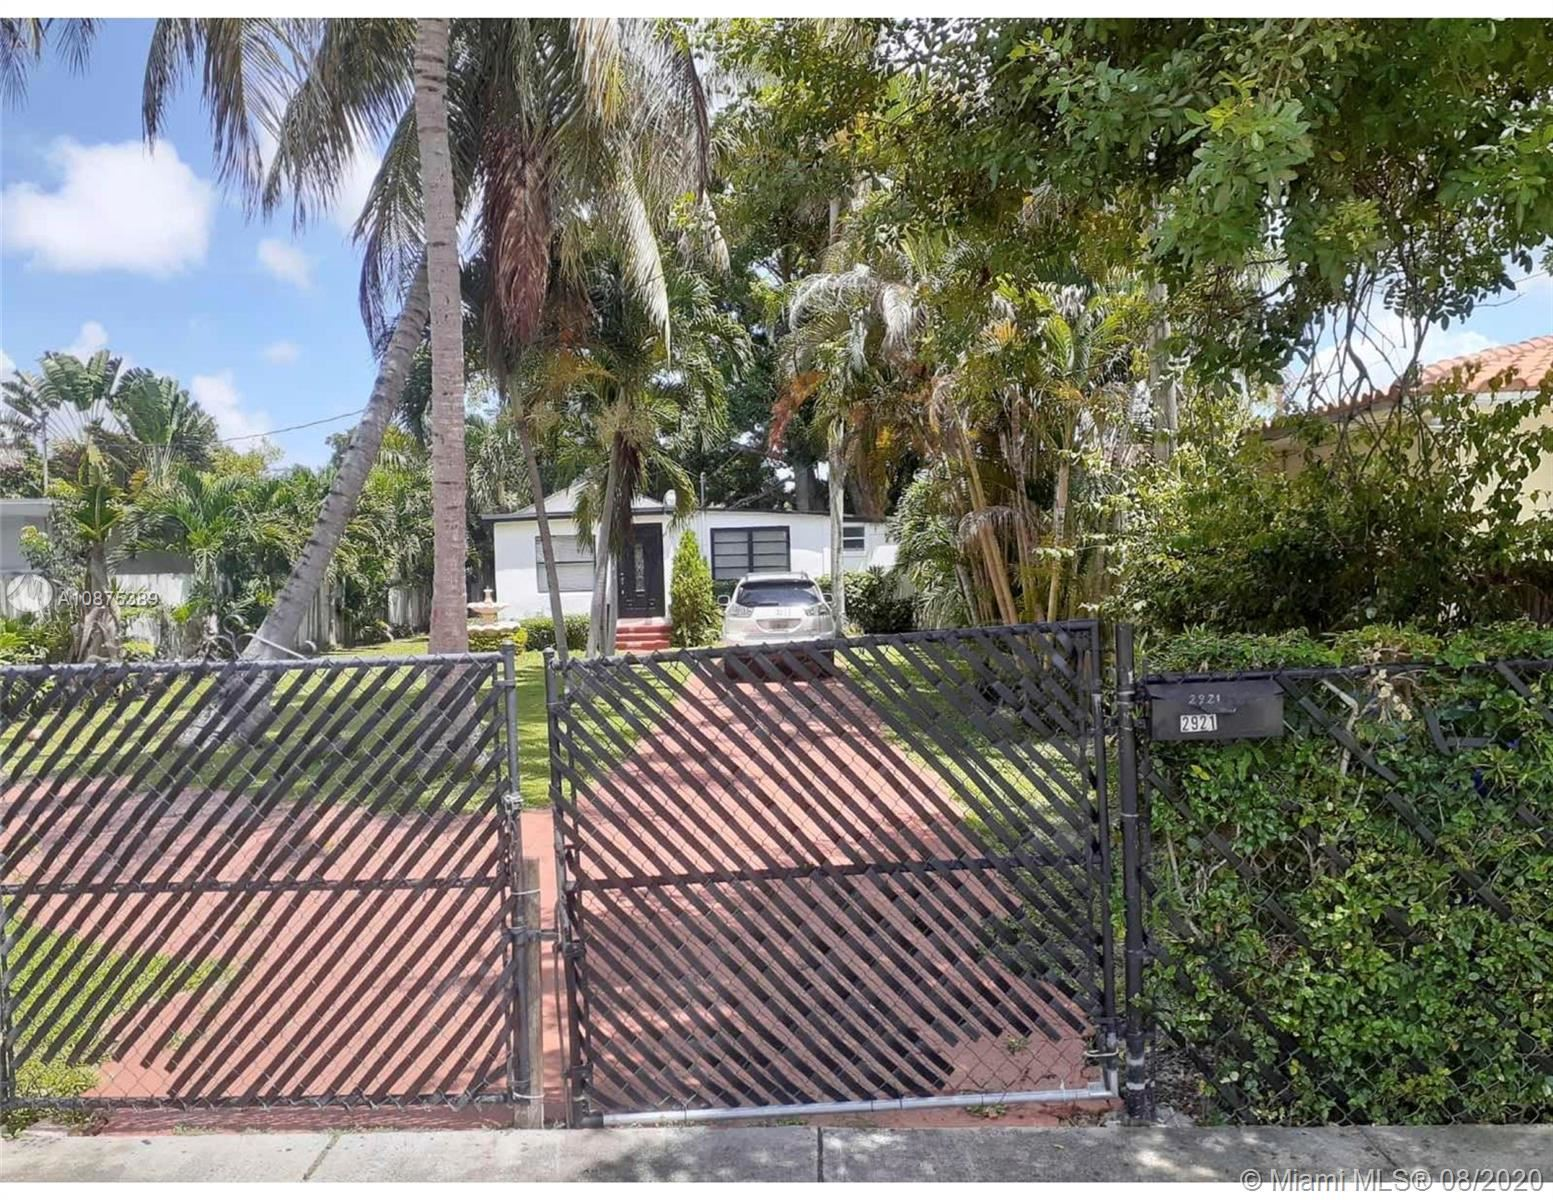 2921 SW 35th Ave, Miami, FL 33133 - #: A10875389